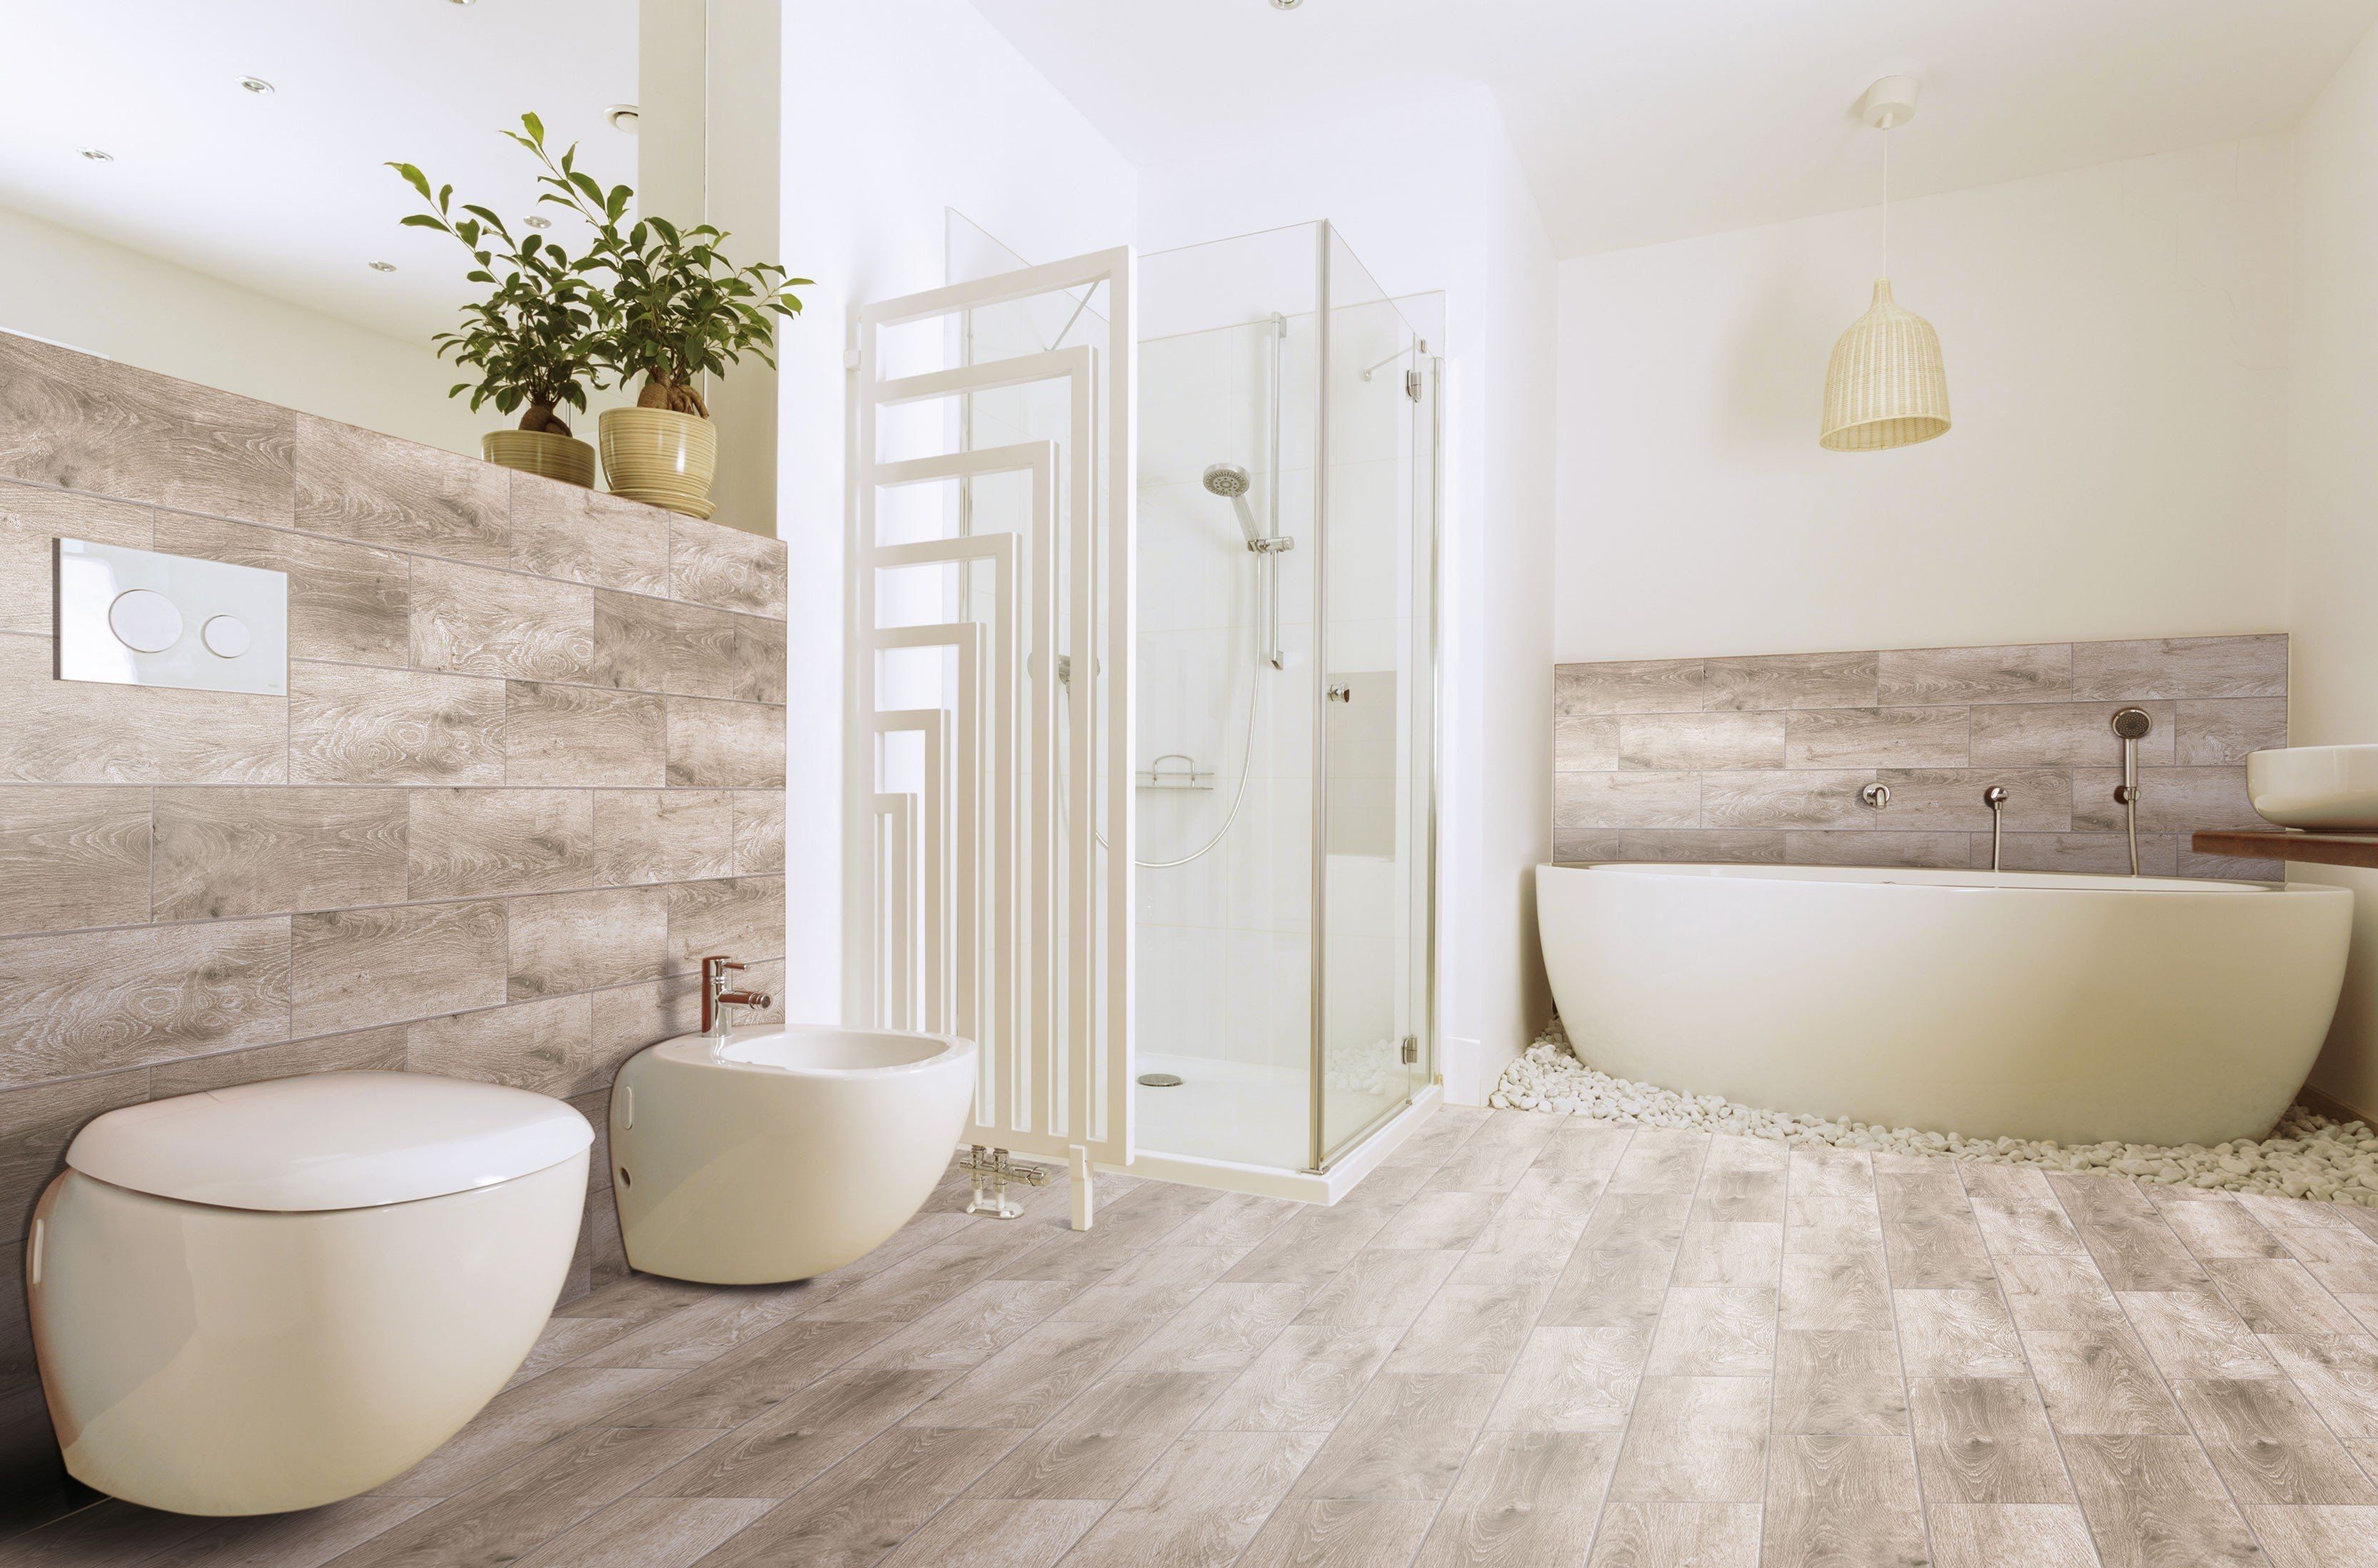 Wood Effect Bathroom Floor Tiles | http://dreamhomesbyrob.com ...